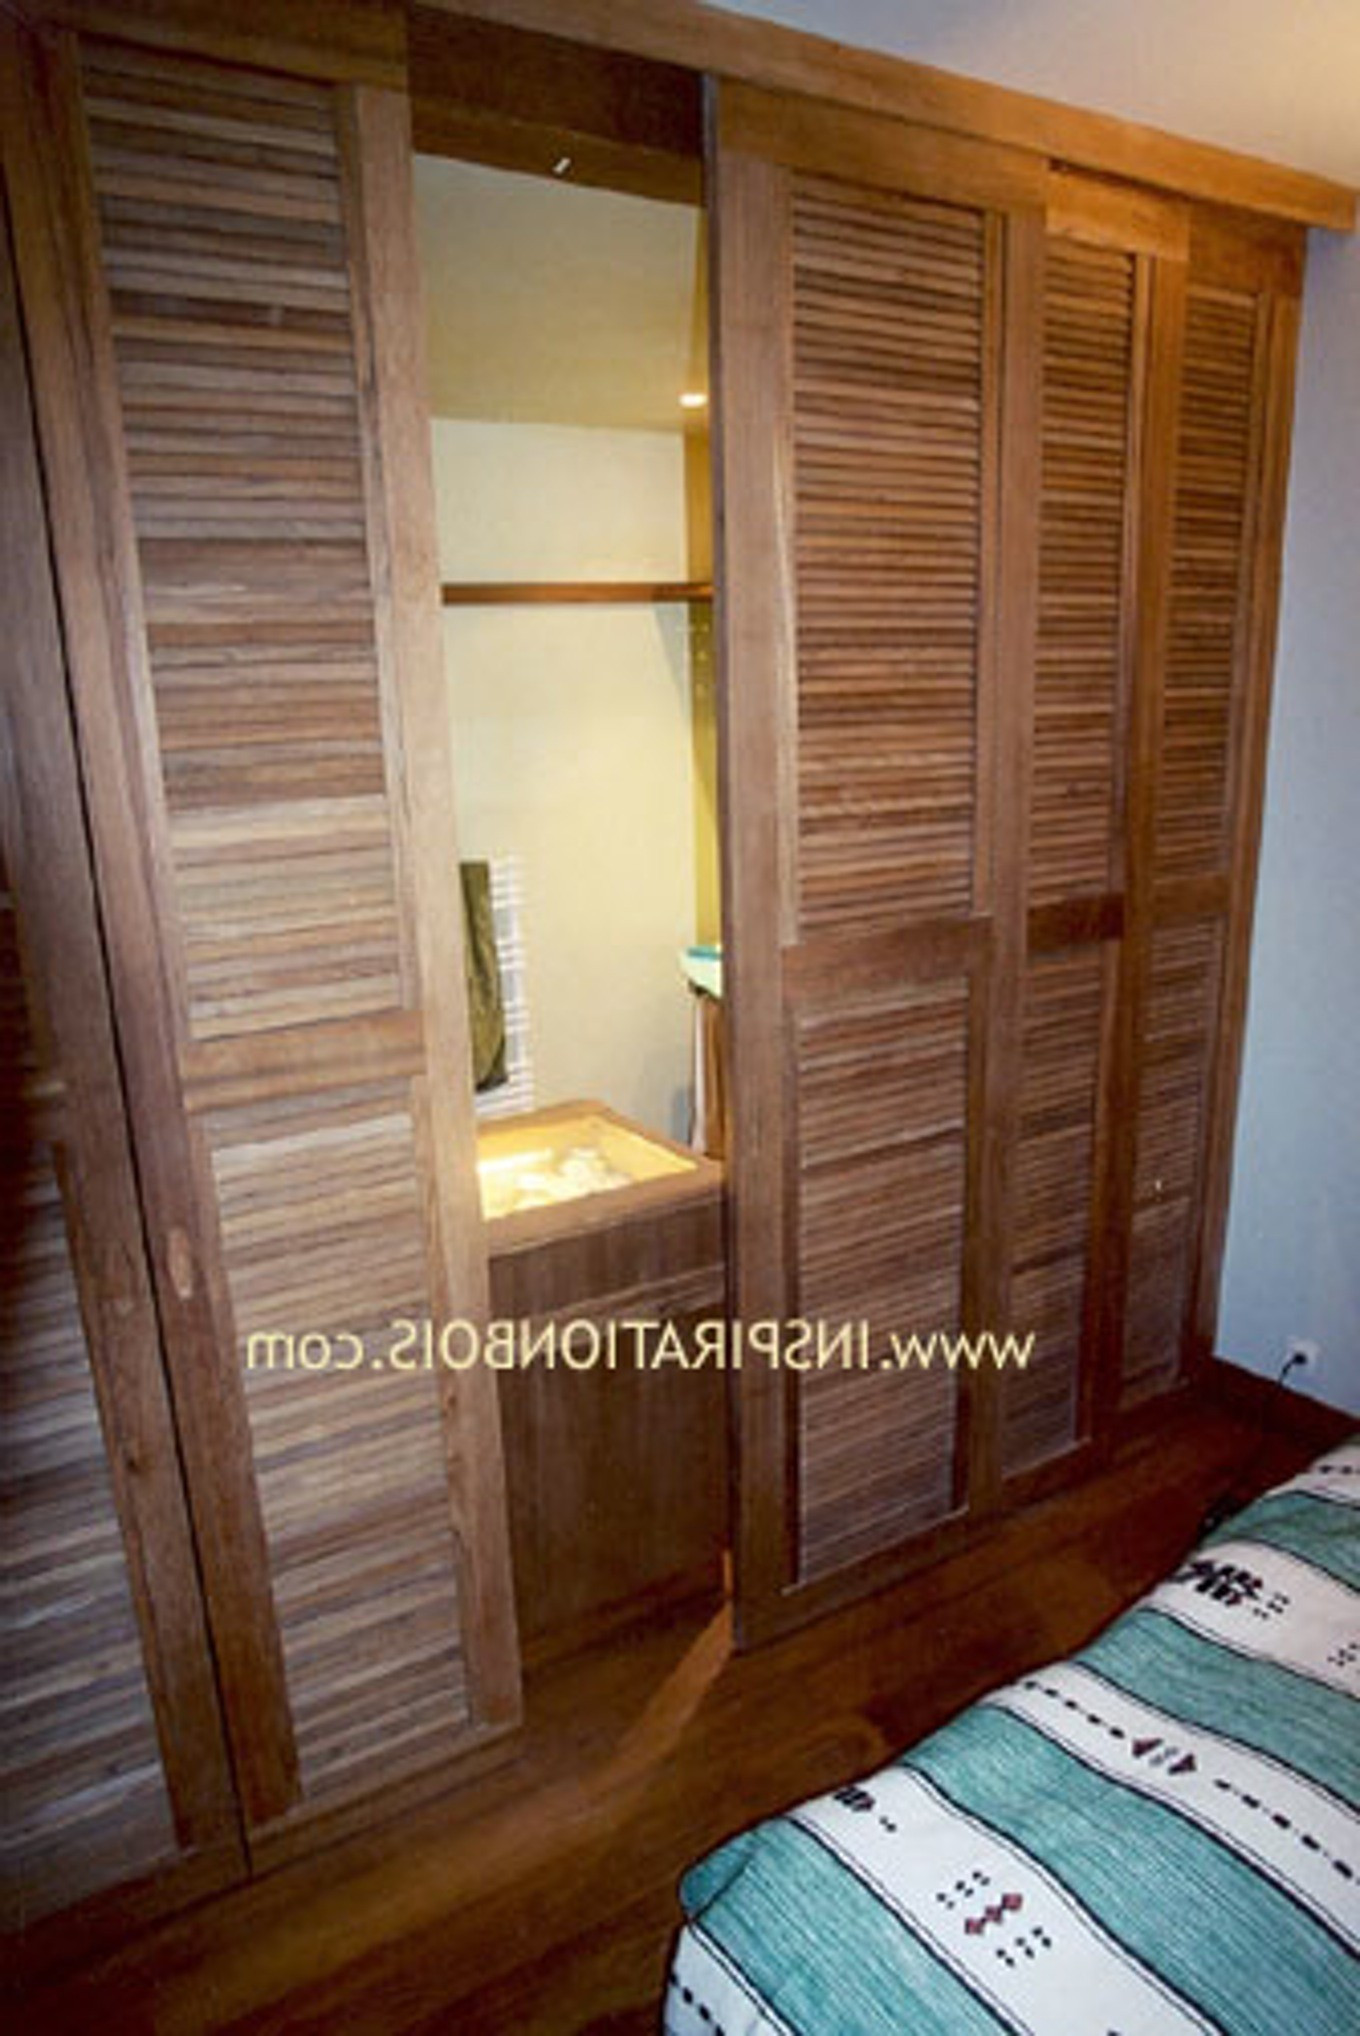 pvc hardwood flooring of fenetres coulissantes castorama luxury cloison coulissante japonaise for information